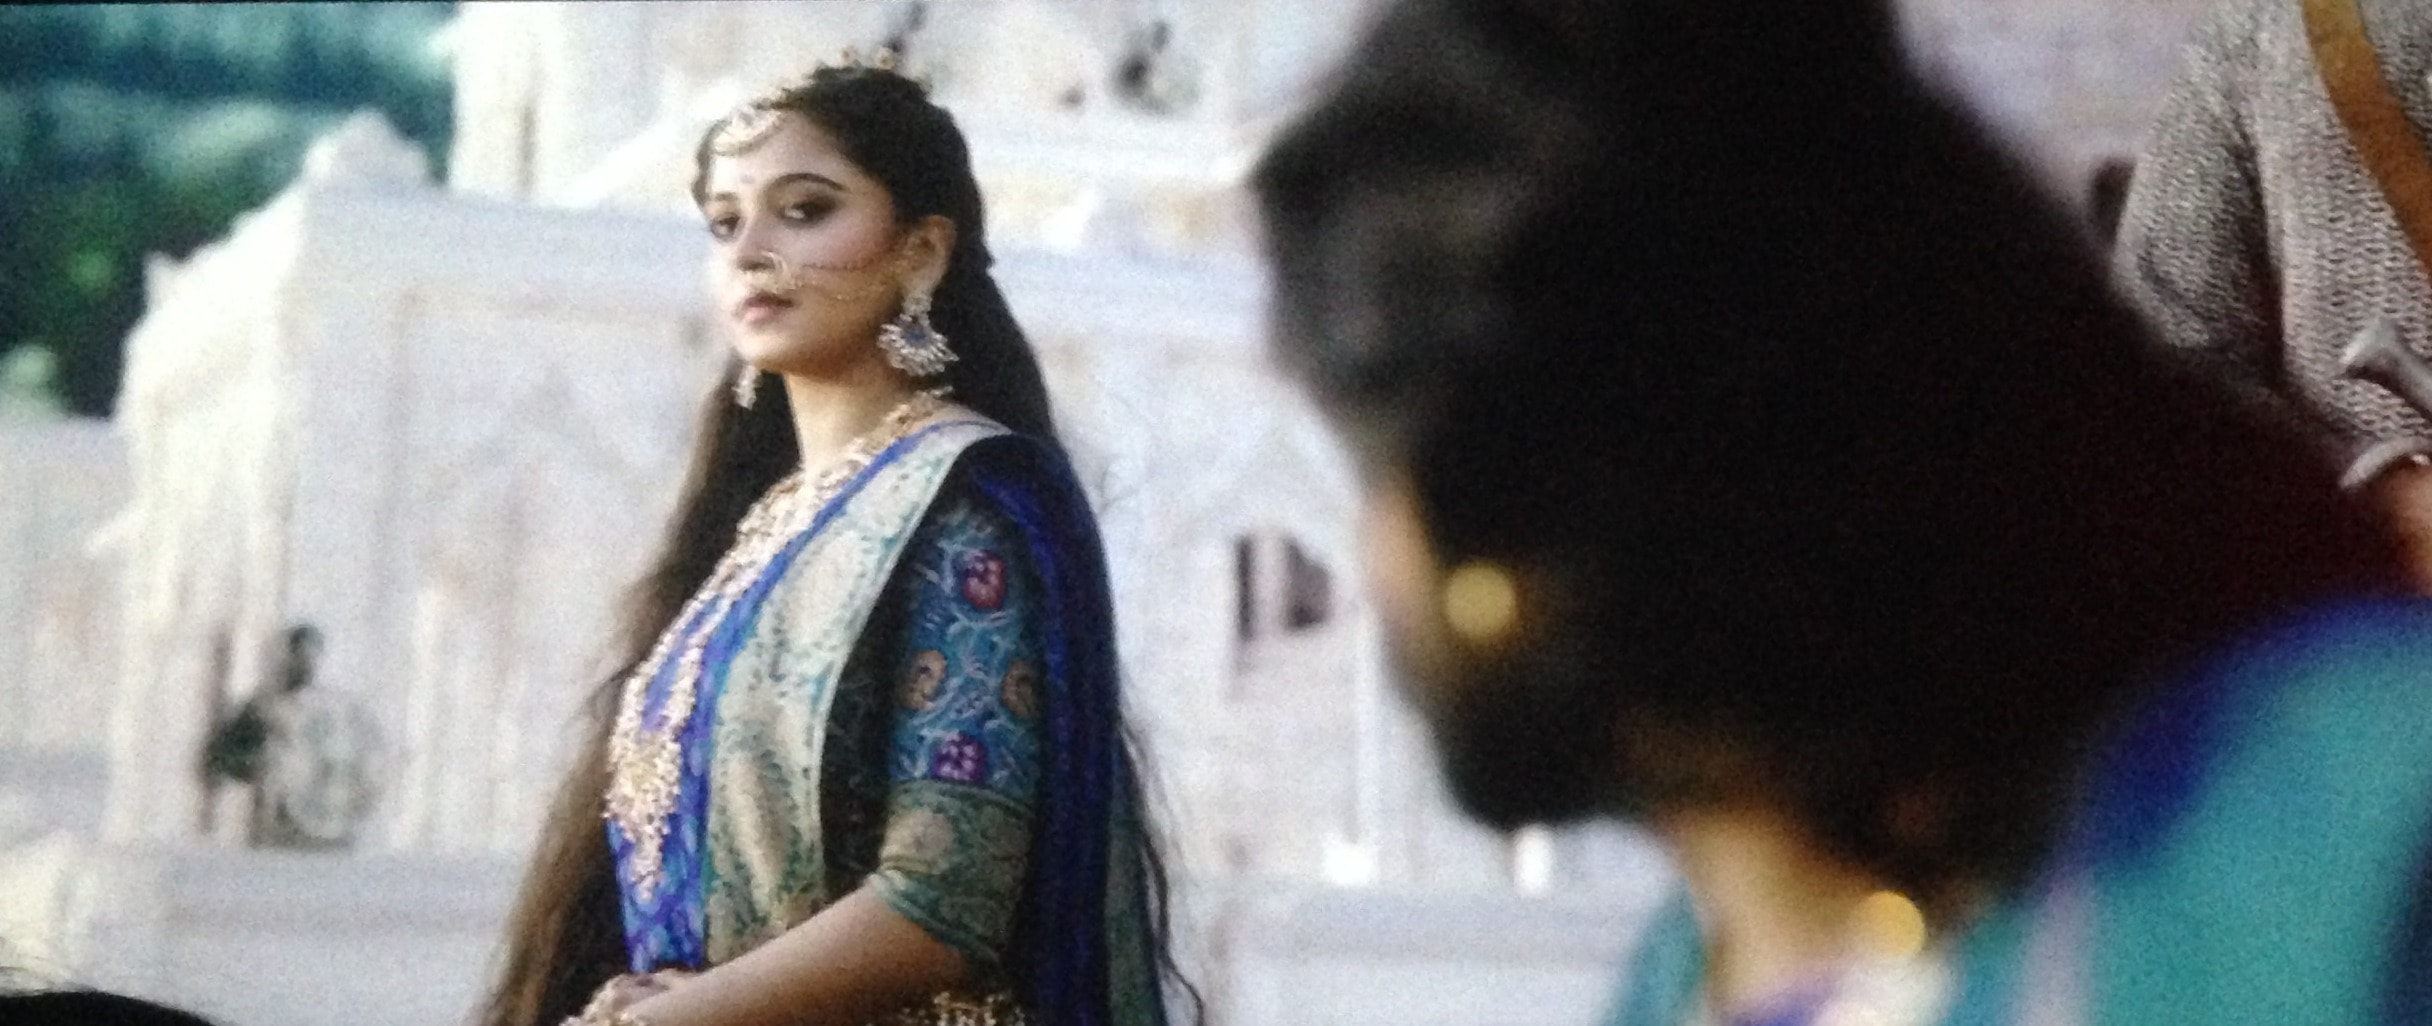 Prabhas And Anushka In Bahubali Anushka Shetty Goddess...